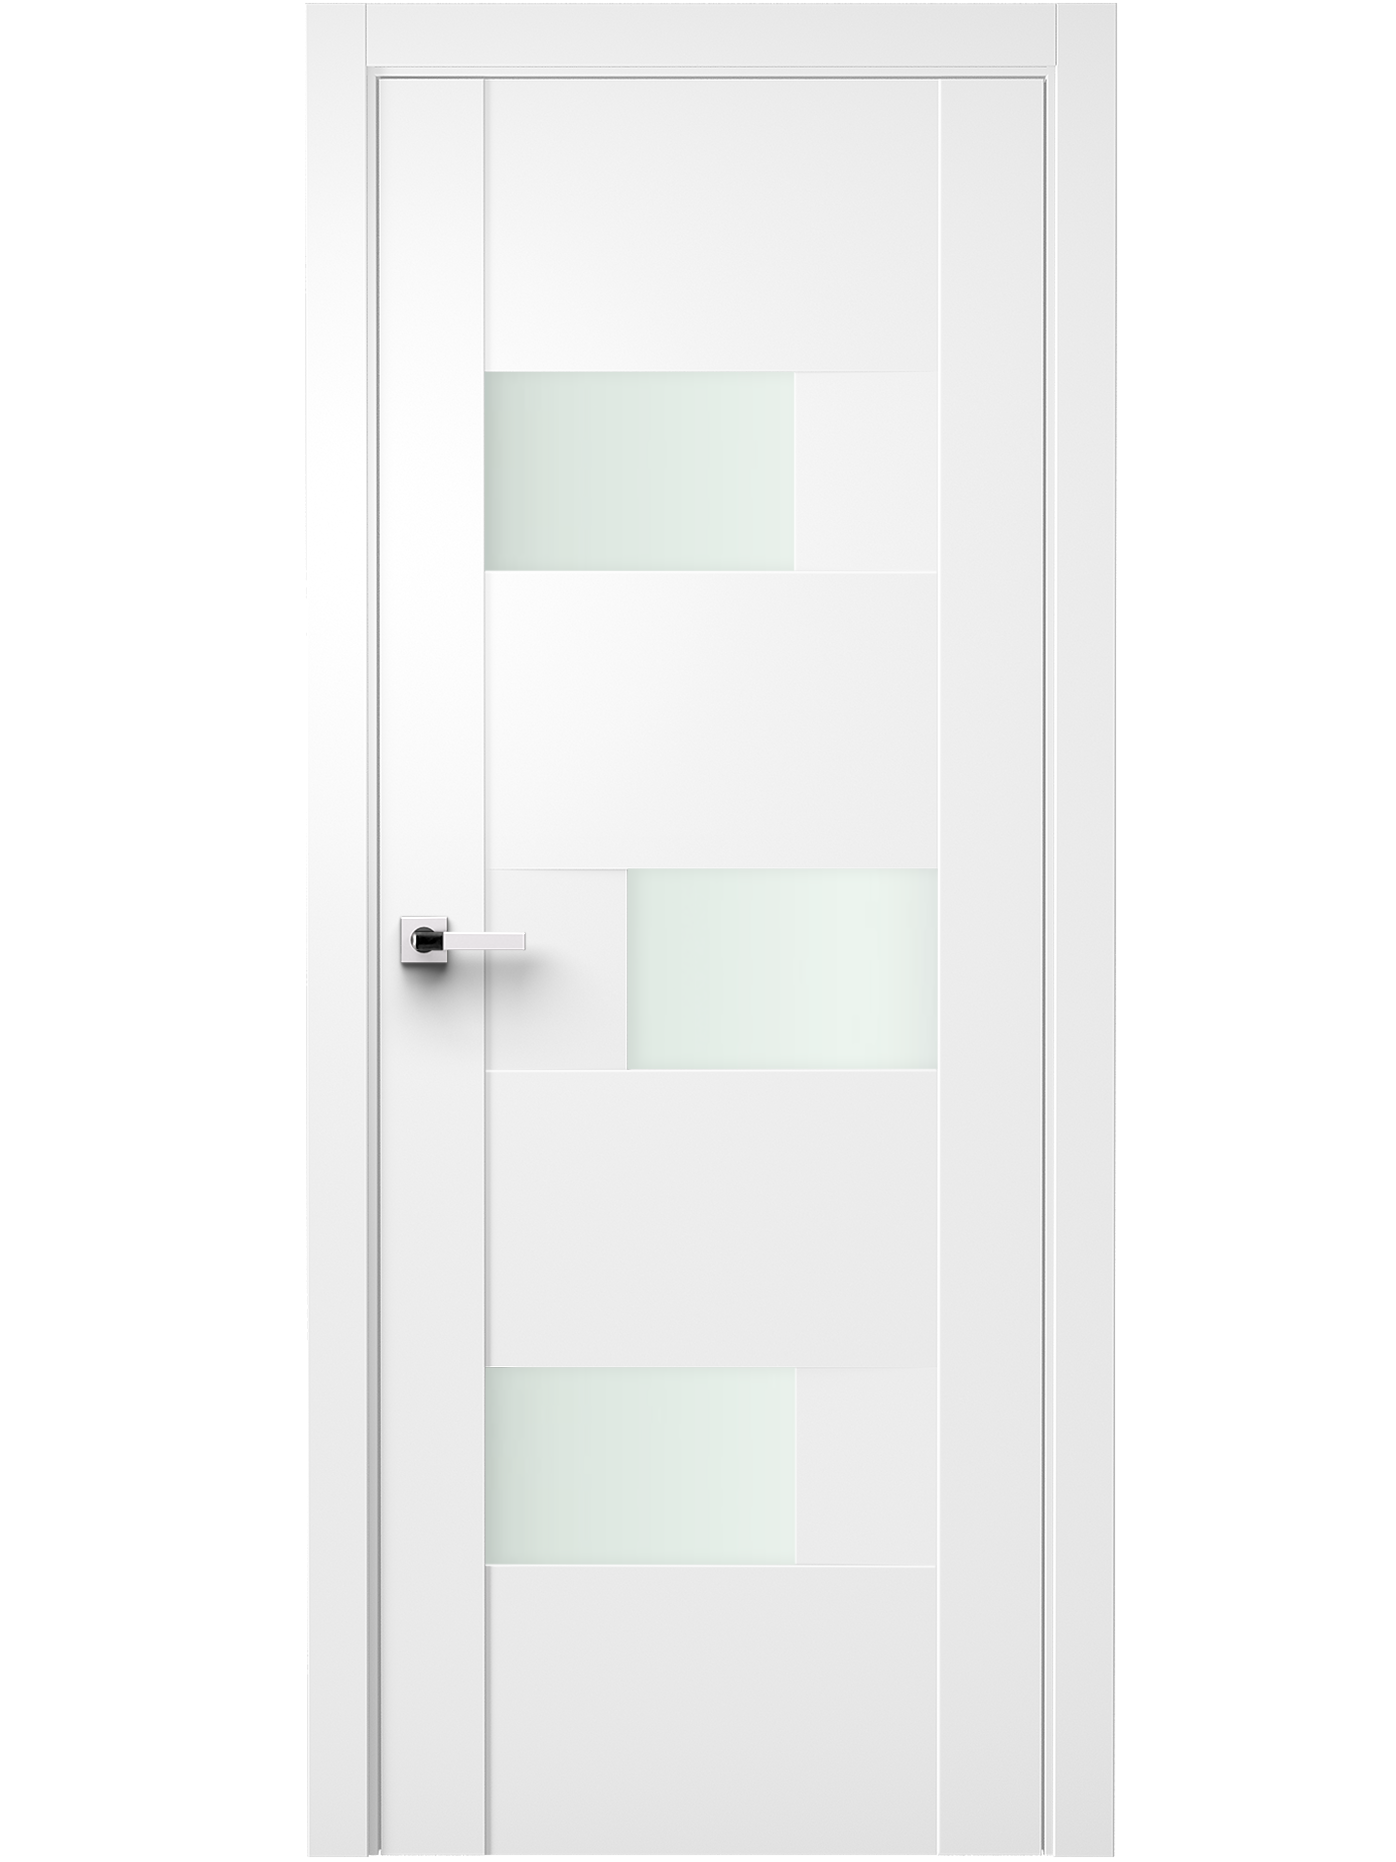 Image Fortika Vetro Interior Door Soft Touch White/ Frosted Glass 0